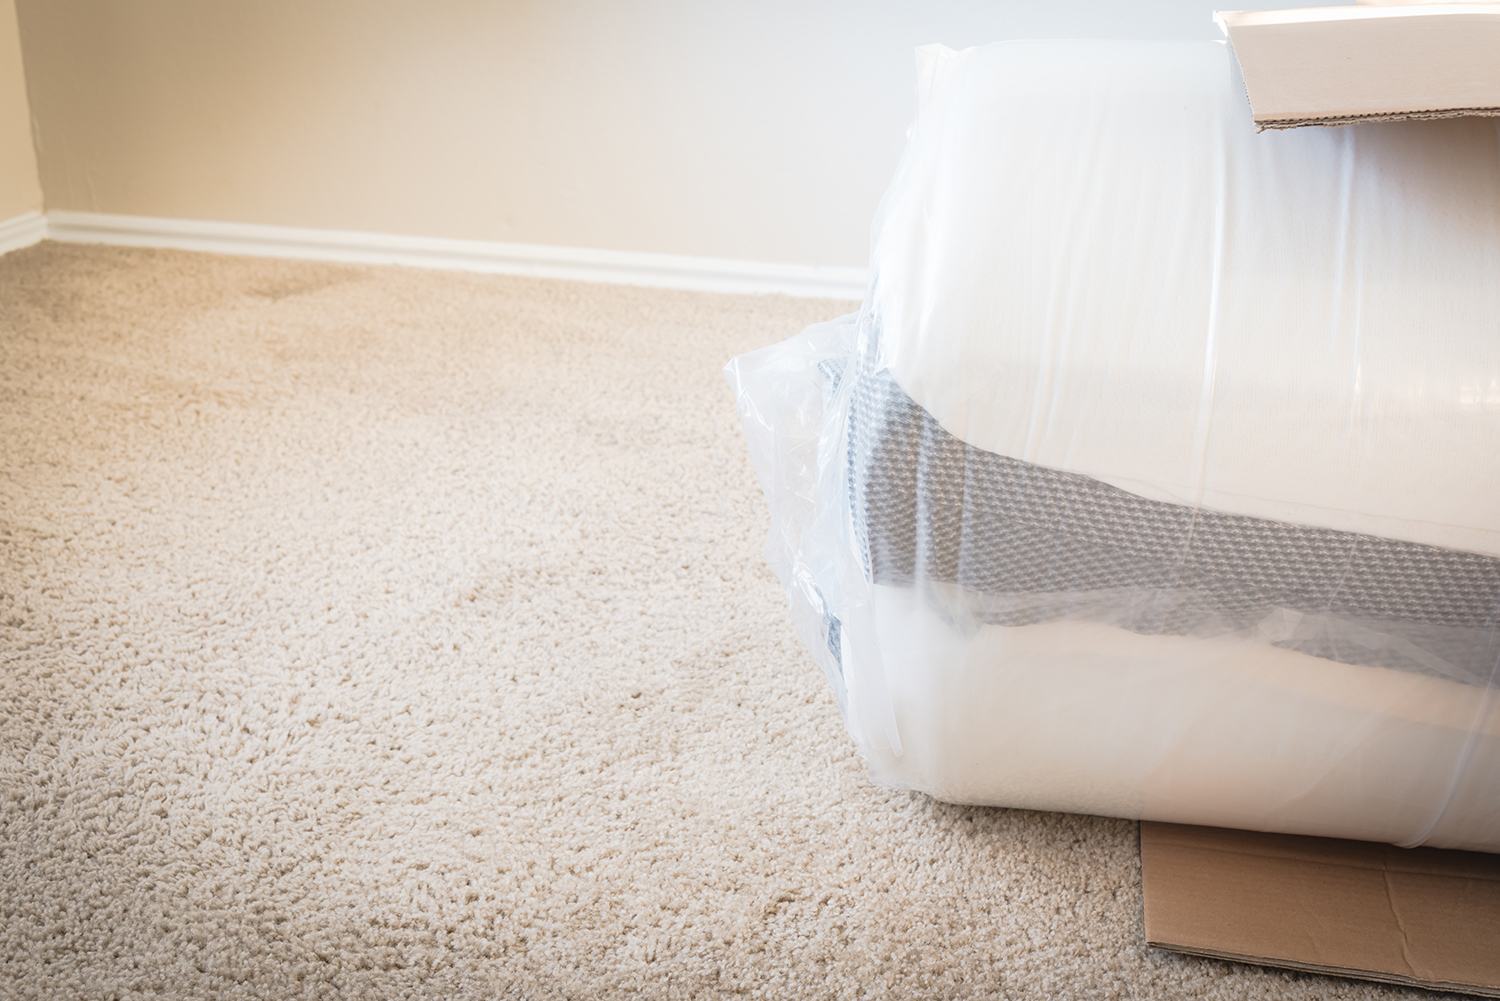 Roll-packed Spring Mattresses